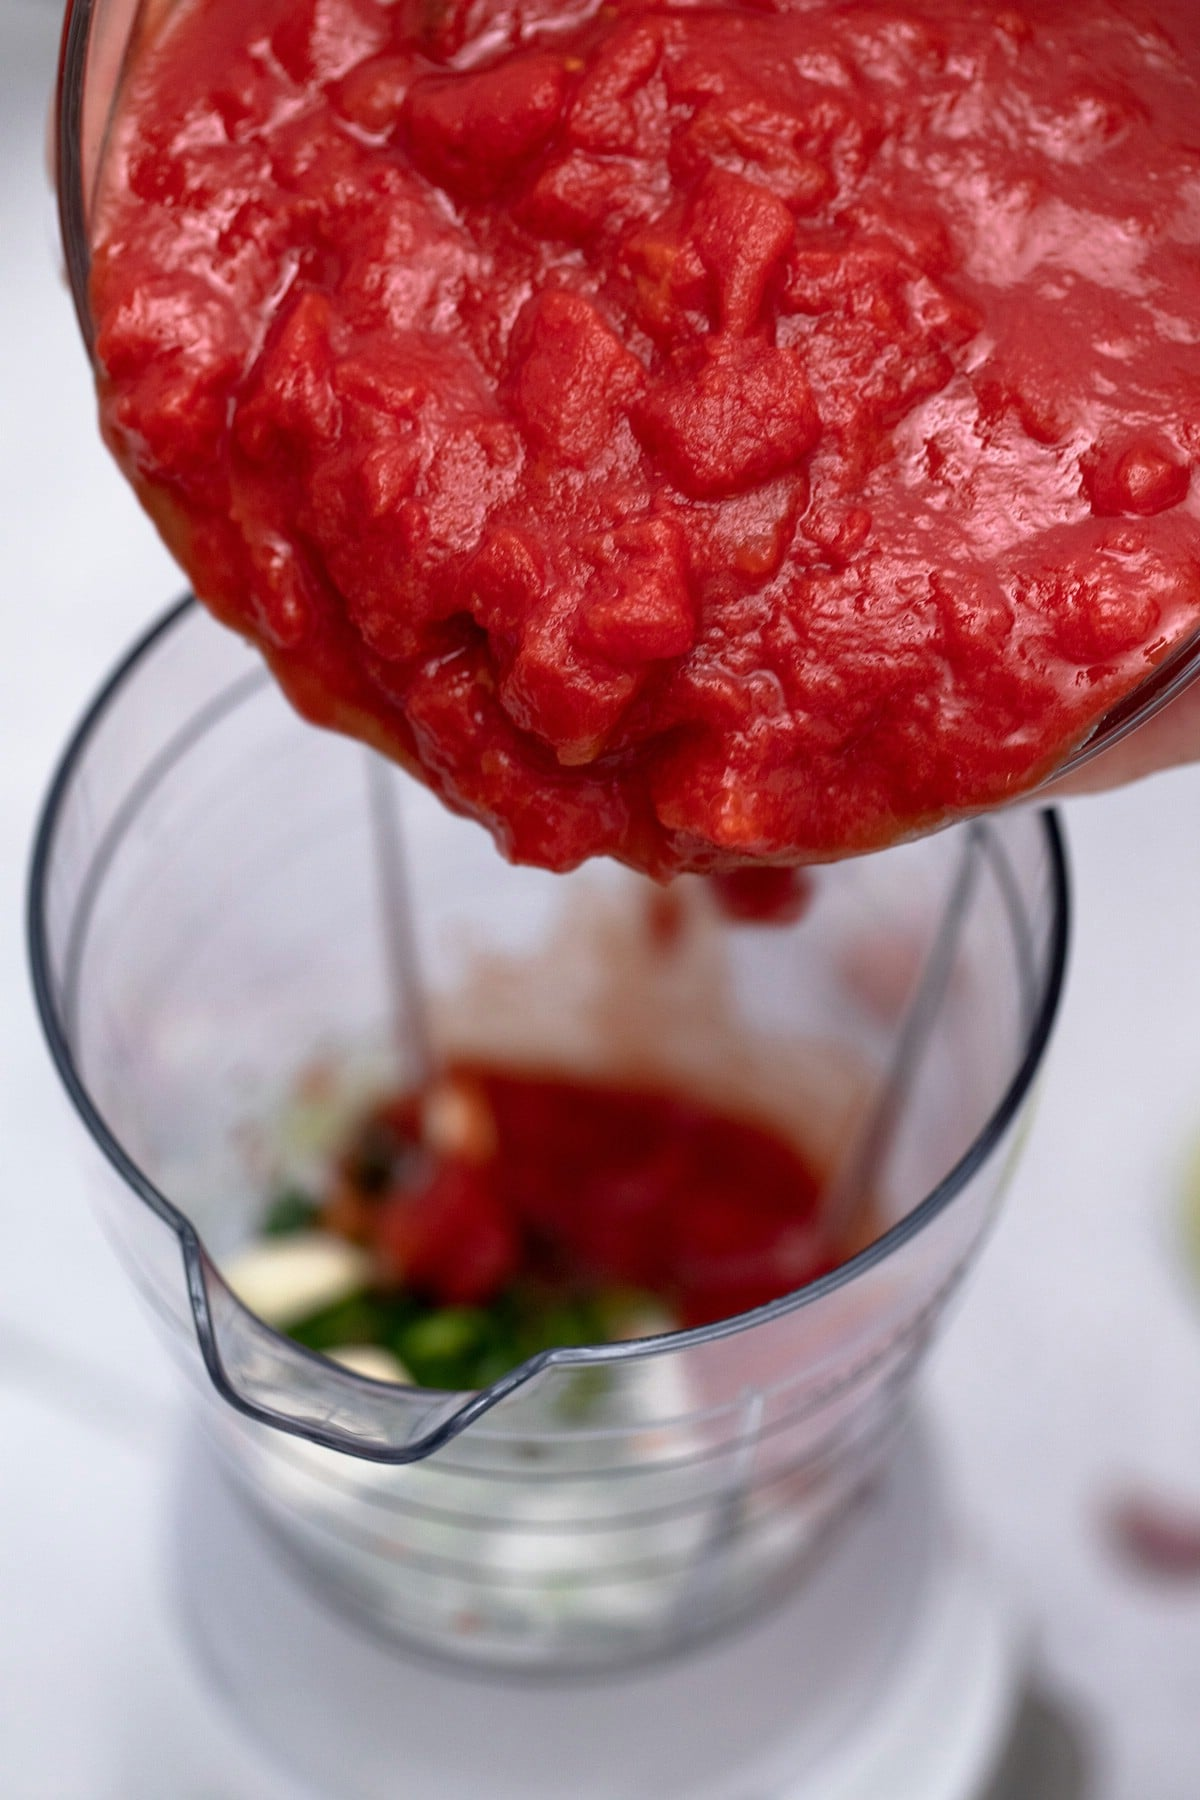 Pouring tomatoes into blender